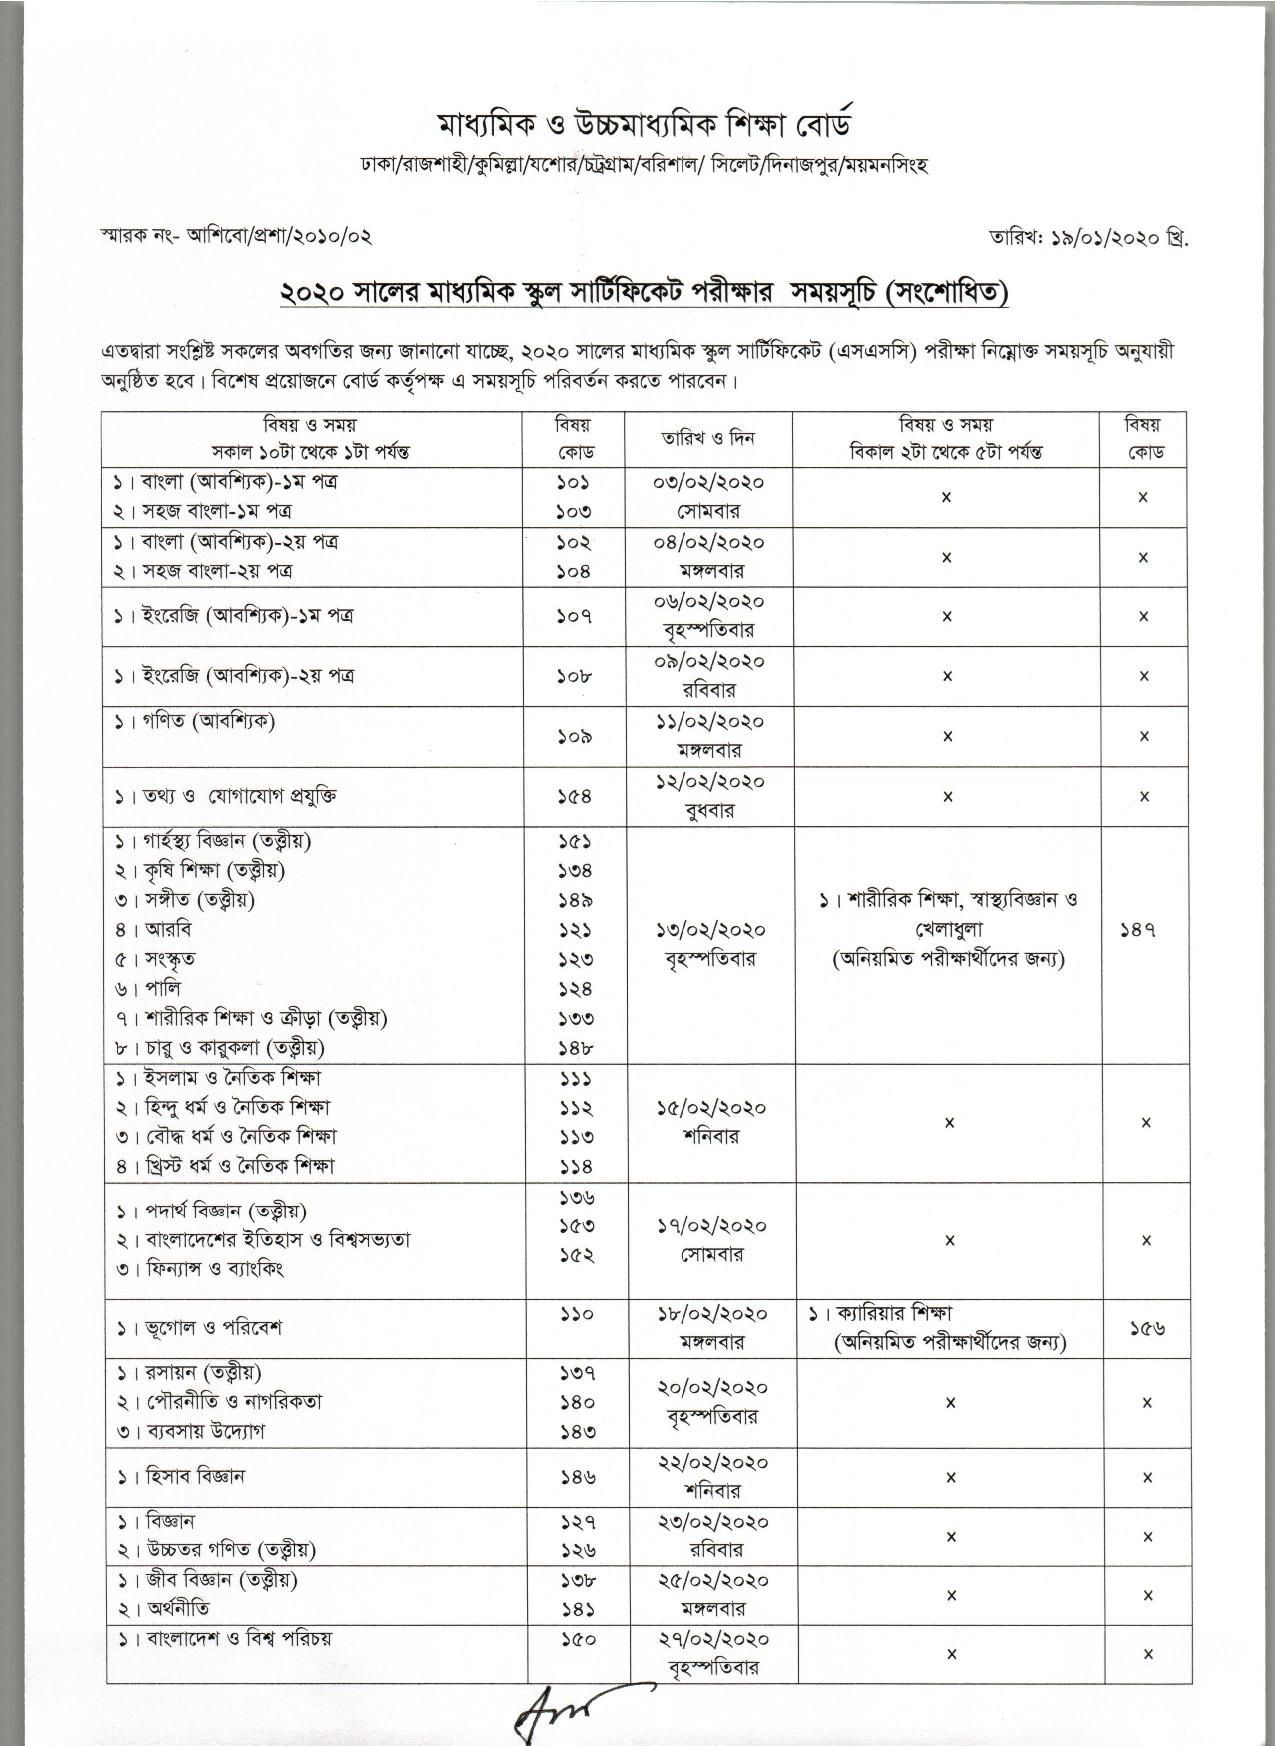 SSC Exam starts in 3rd February (SSC new Exam routine 2020)